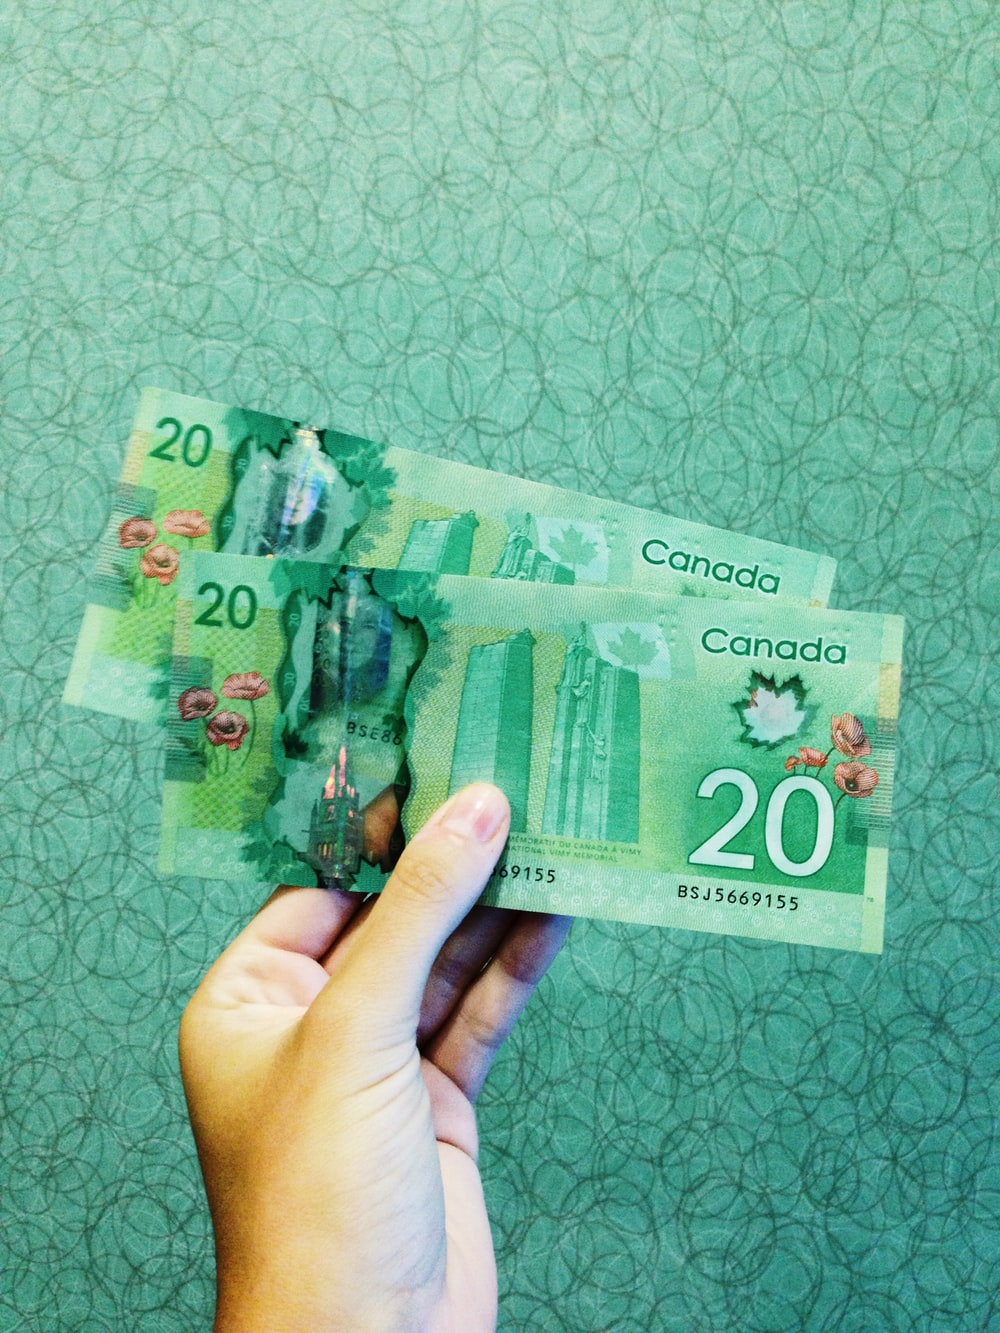 person holding two 20 Canadian dollar banknotes